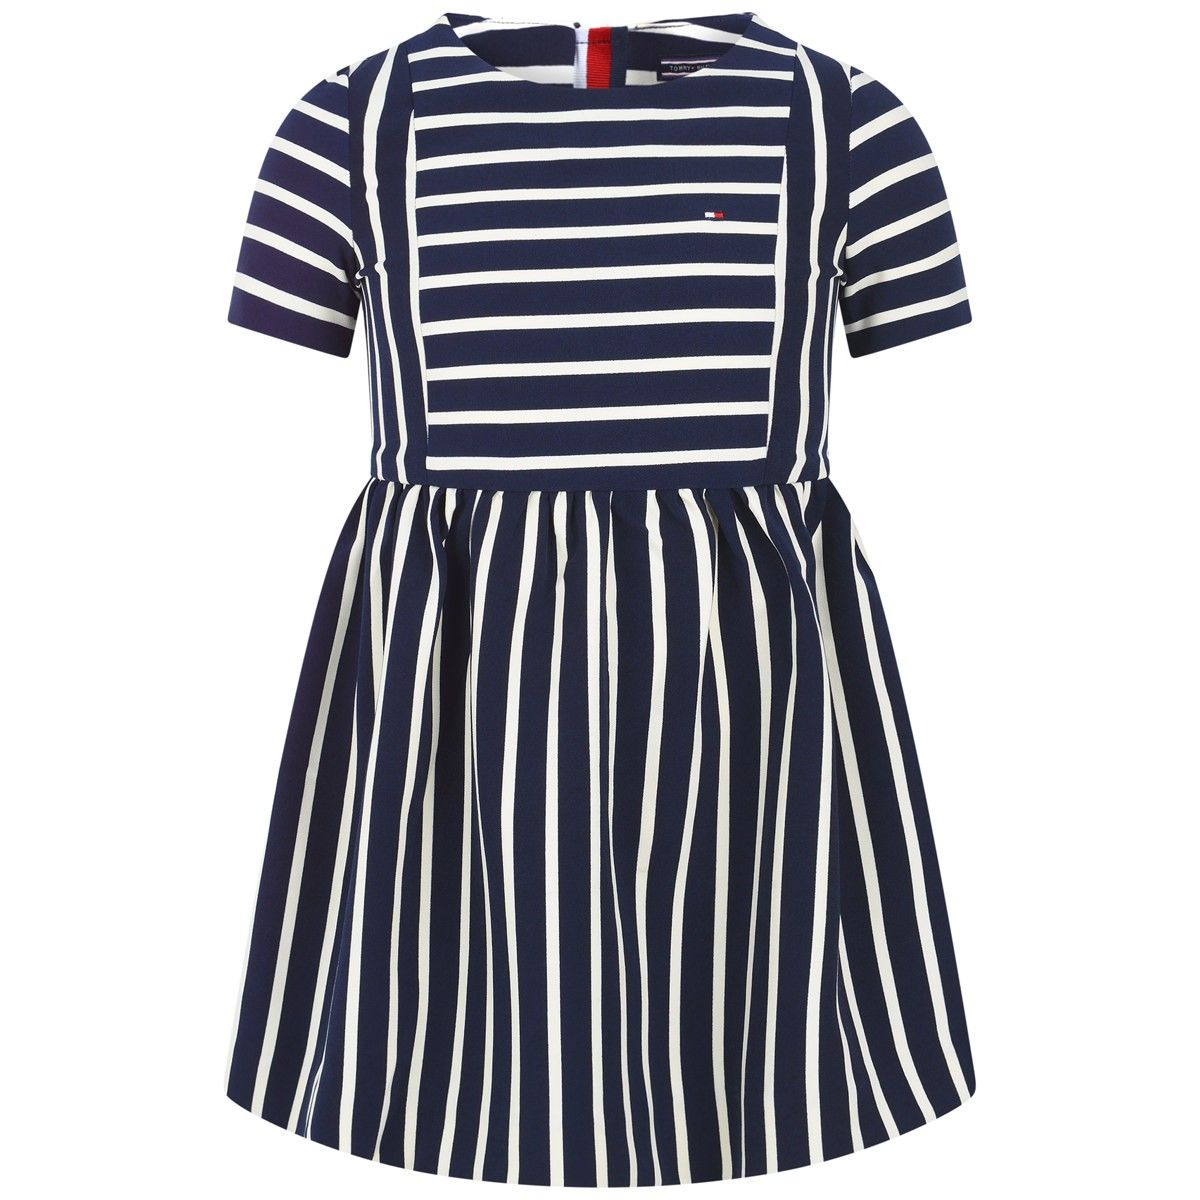 Girls Tommy Hilfiger Kids Clothing + FREE SHIPPING |